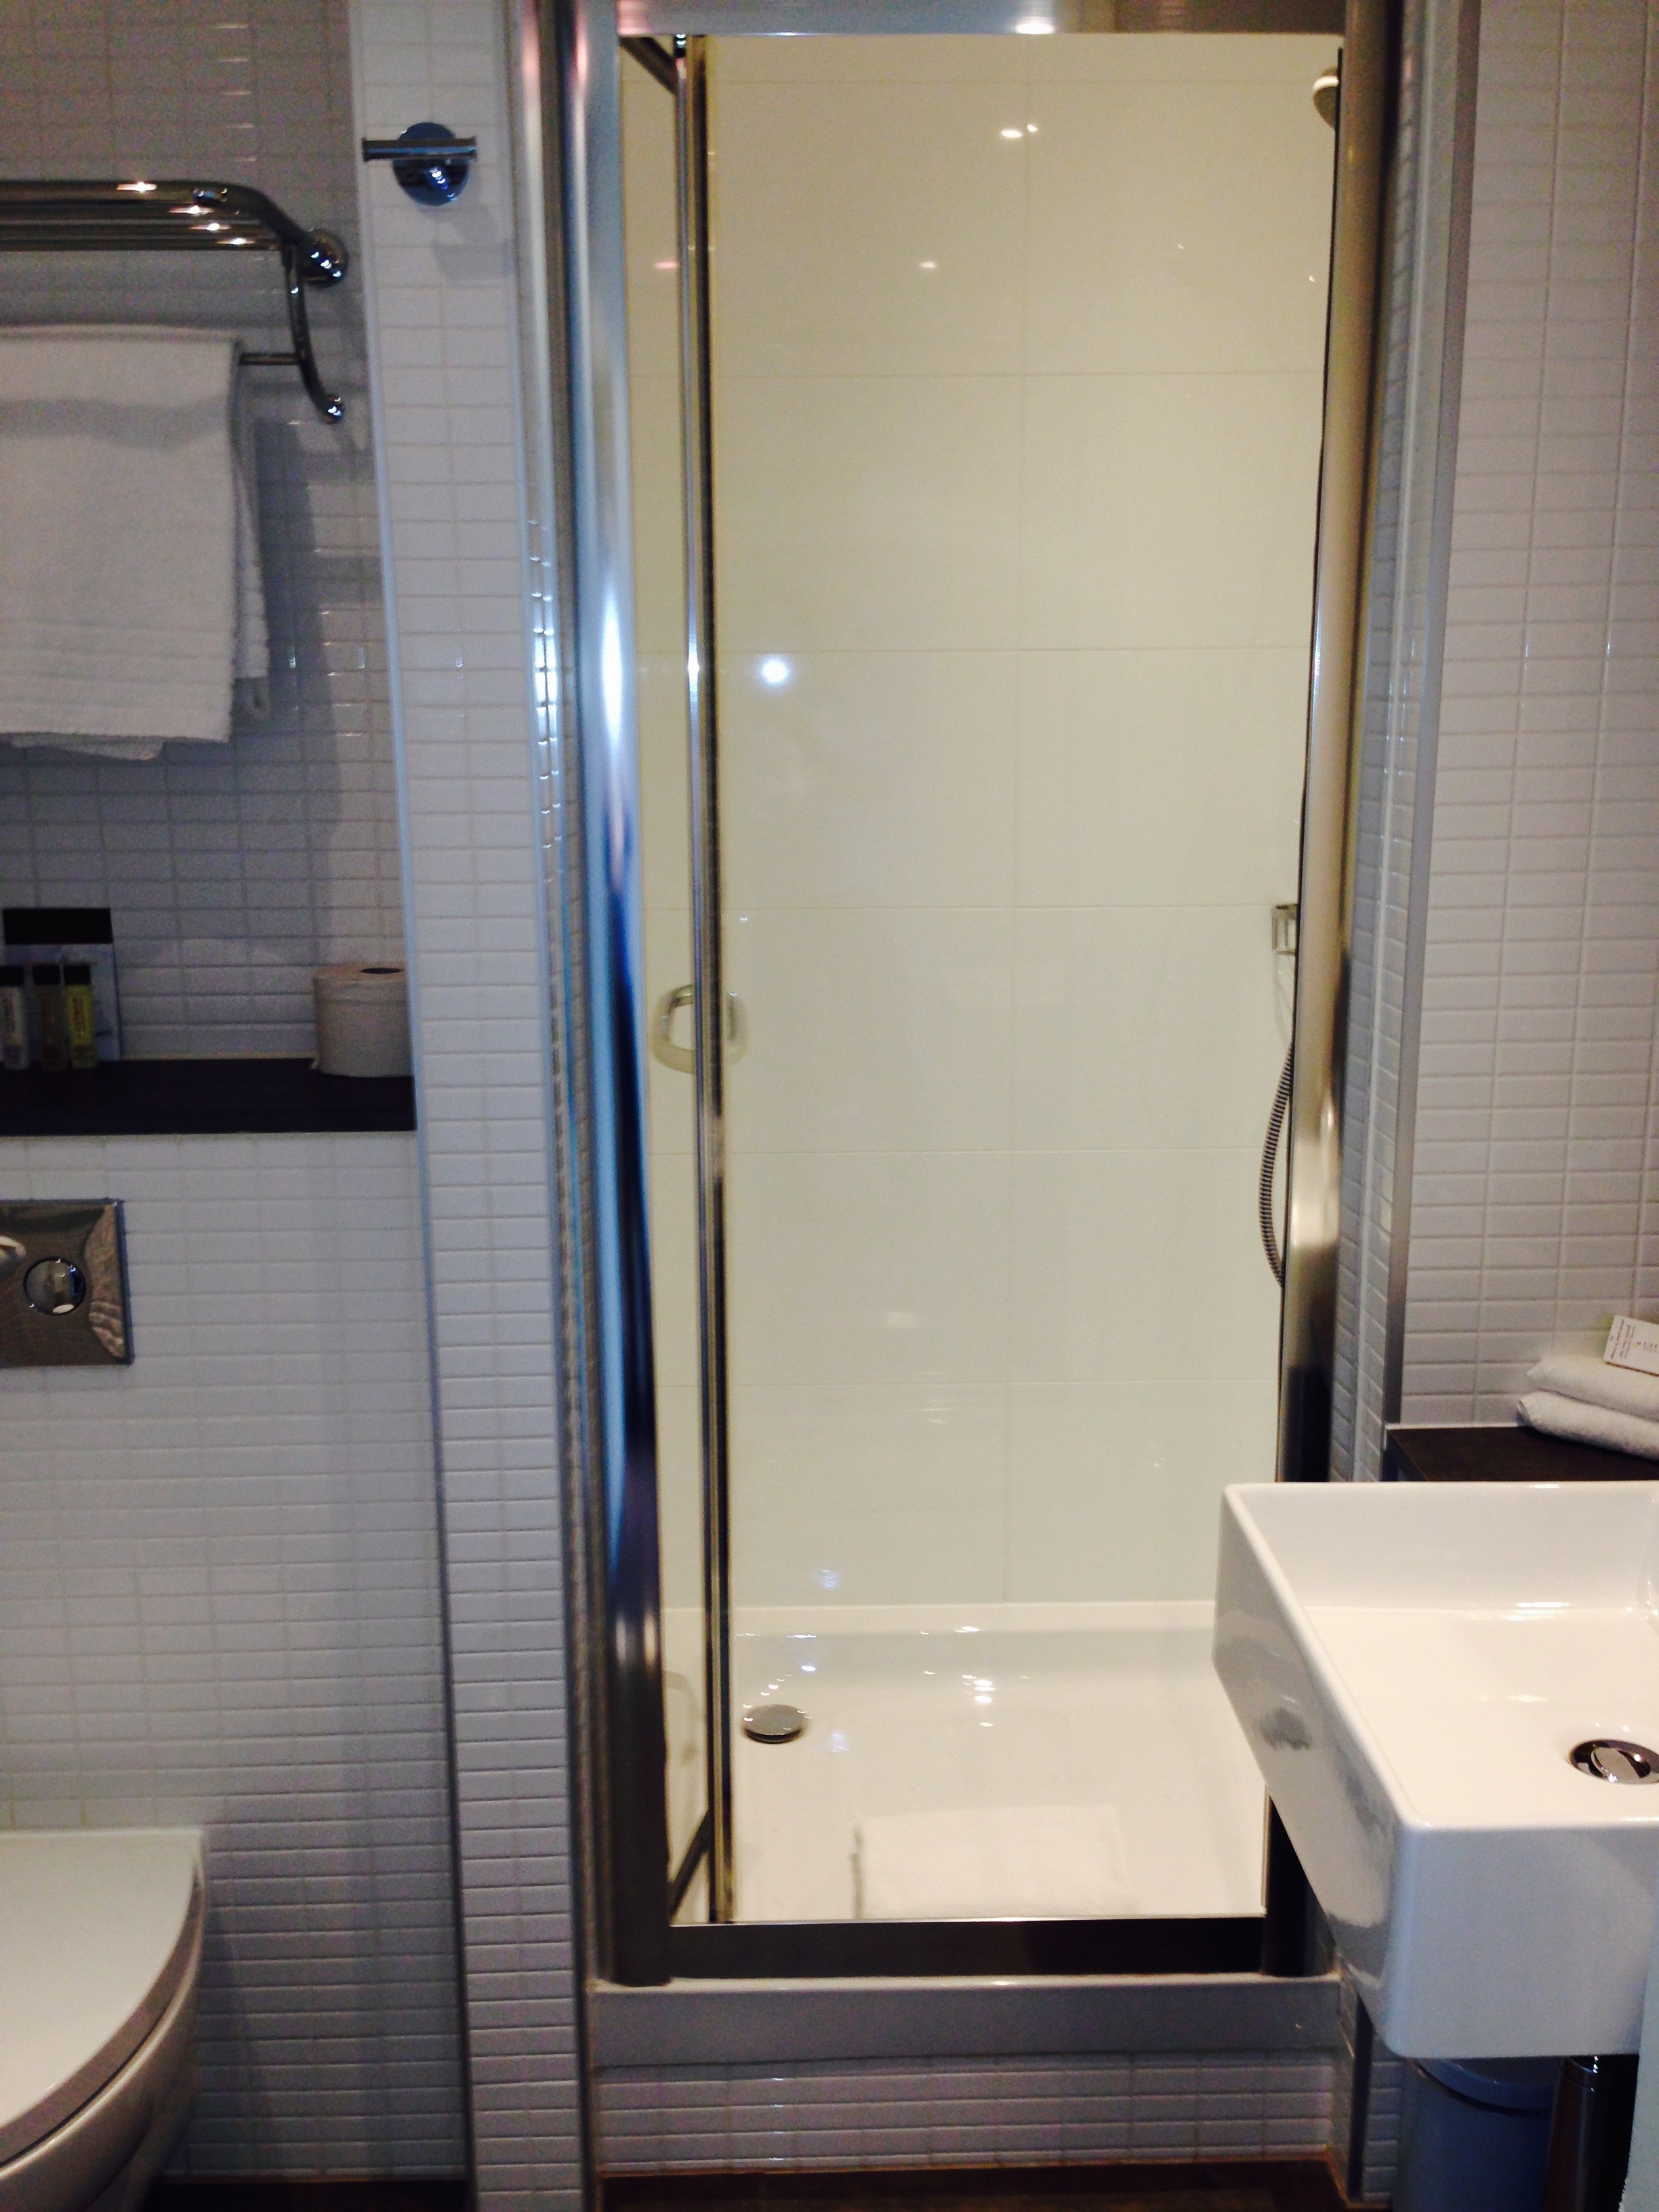 Doubletree by Hilton Amsterdam Centraal Station Bathroom Shower